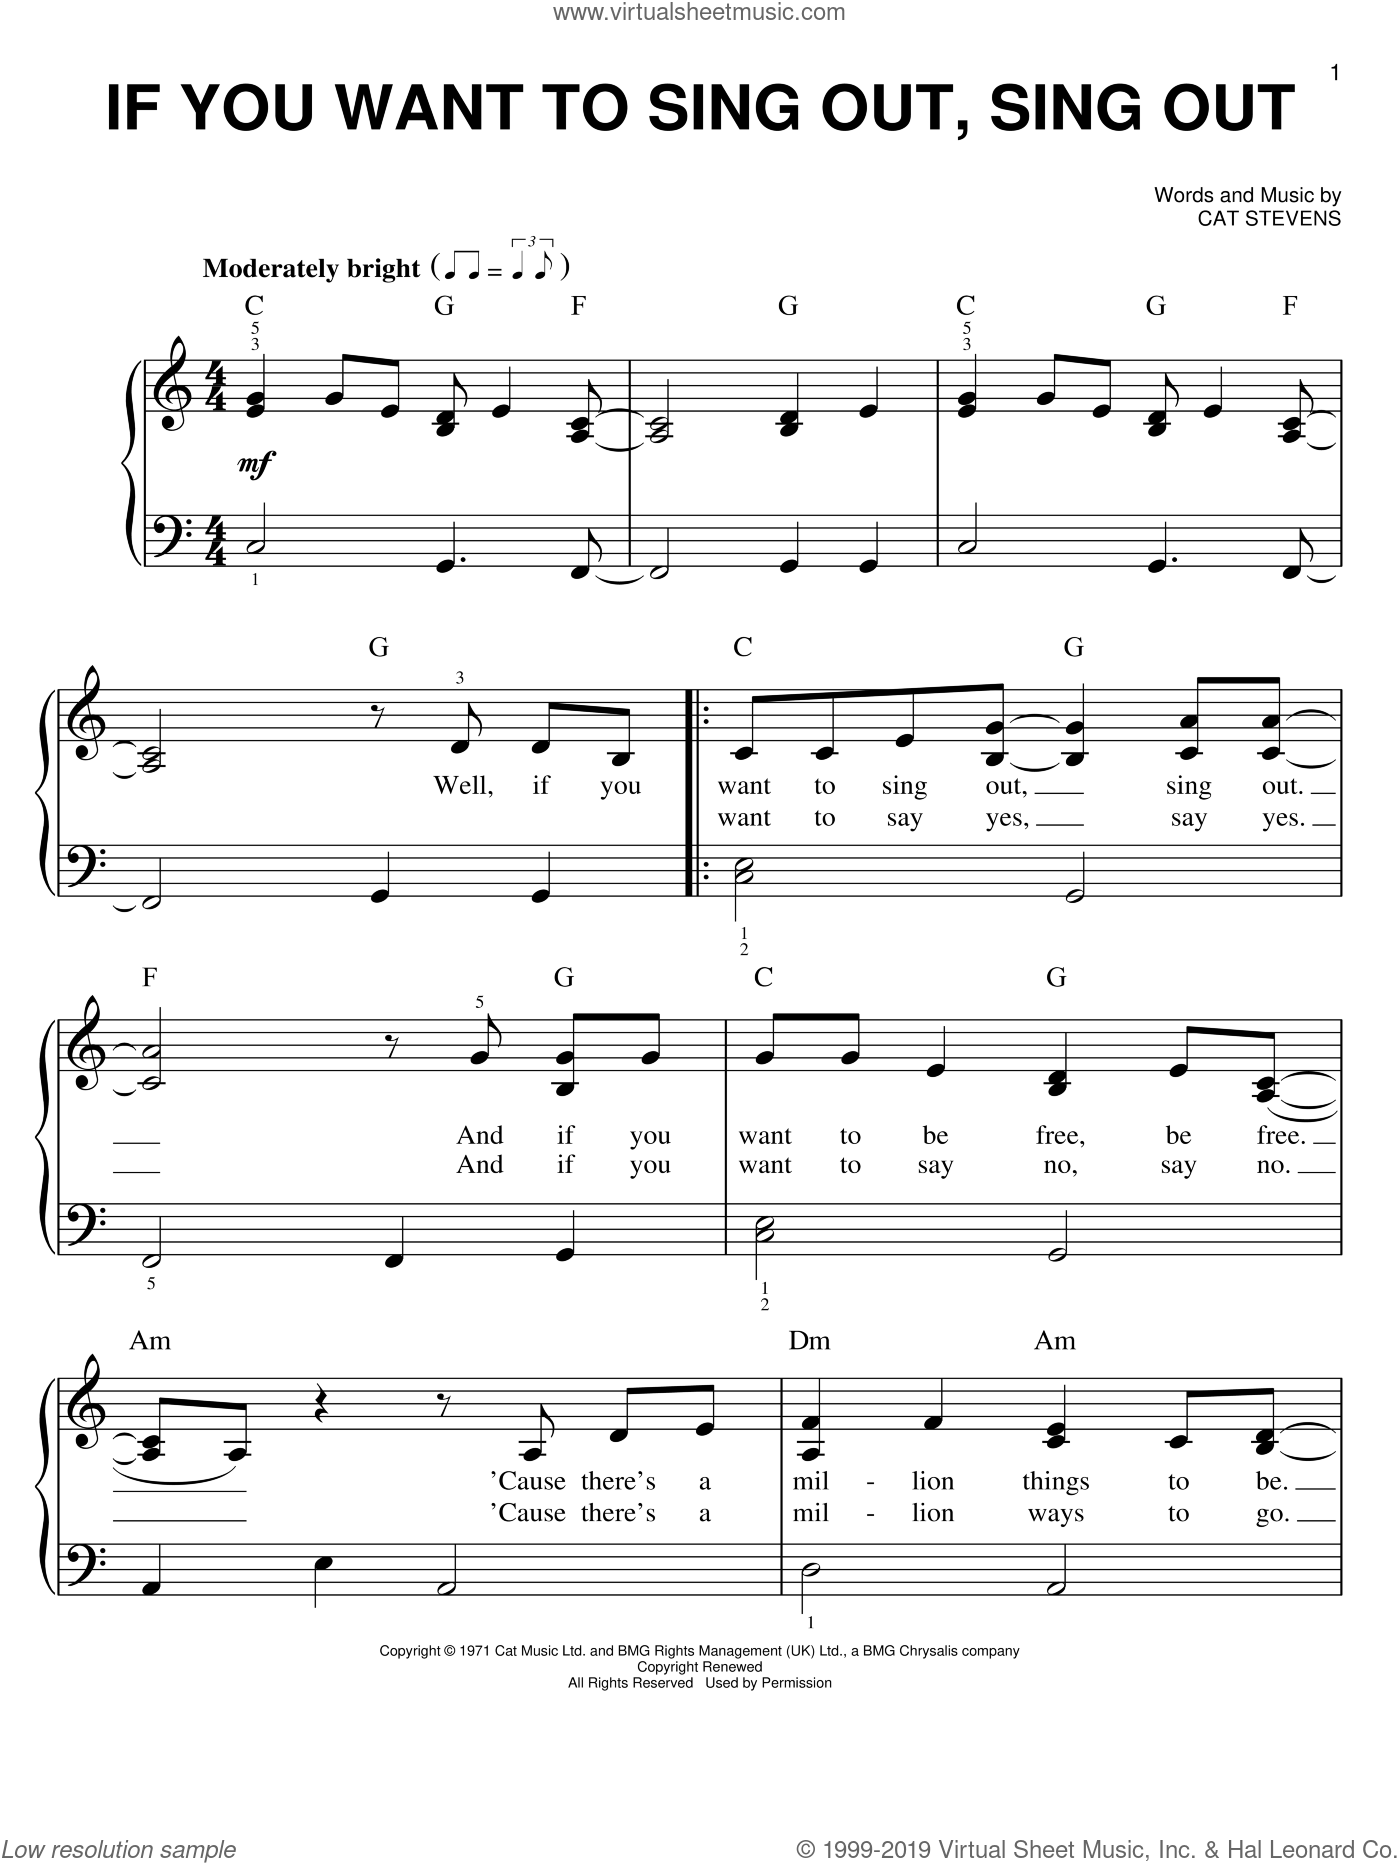 If You Want To Sing Out, Sing Out sheet music for piano solo by Cat Stevens, easy skill level